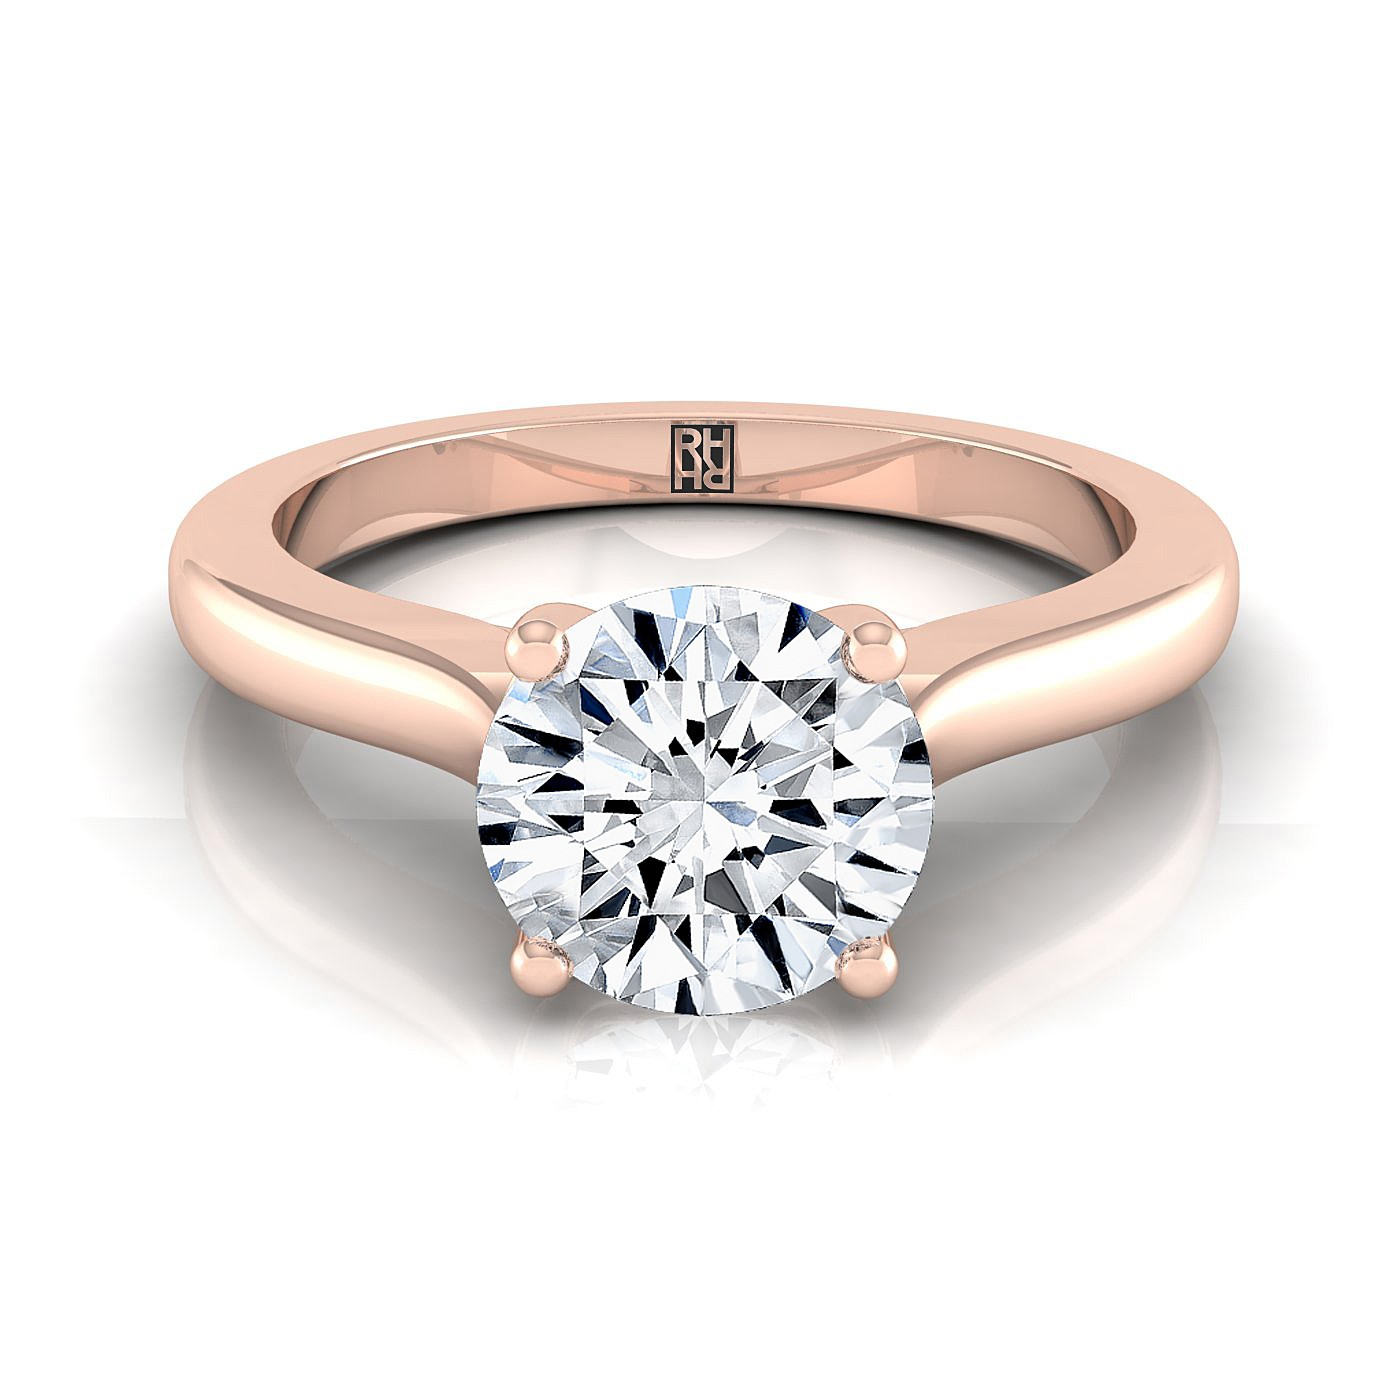 image j reeds sku signature exclusive ring solitaire of diamond with classic color engagement round rounded